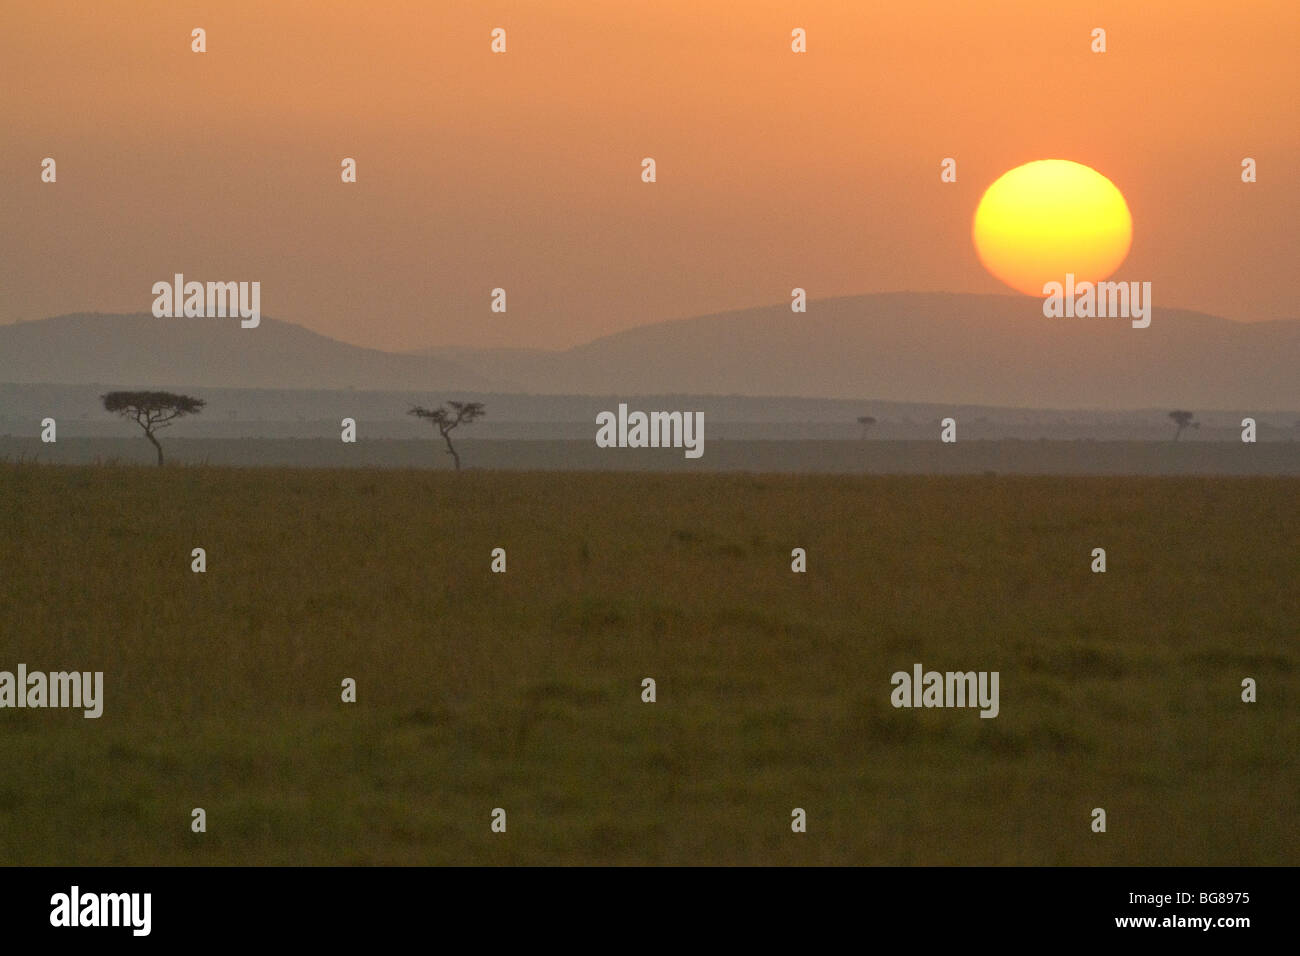 Sunrise over the savannah, Masai Mara, Kenya - Stock Image